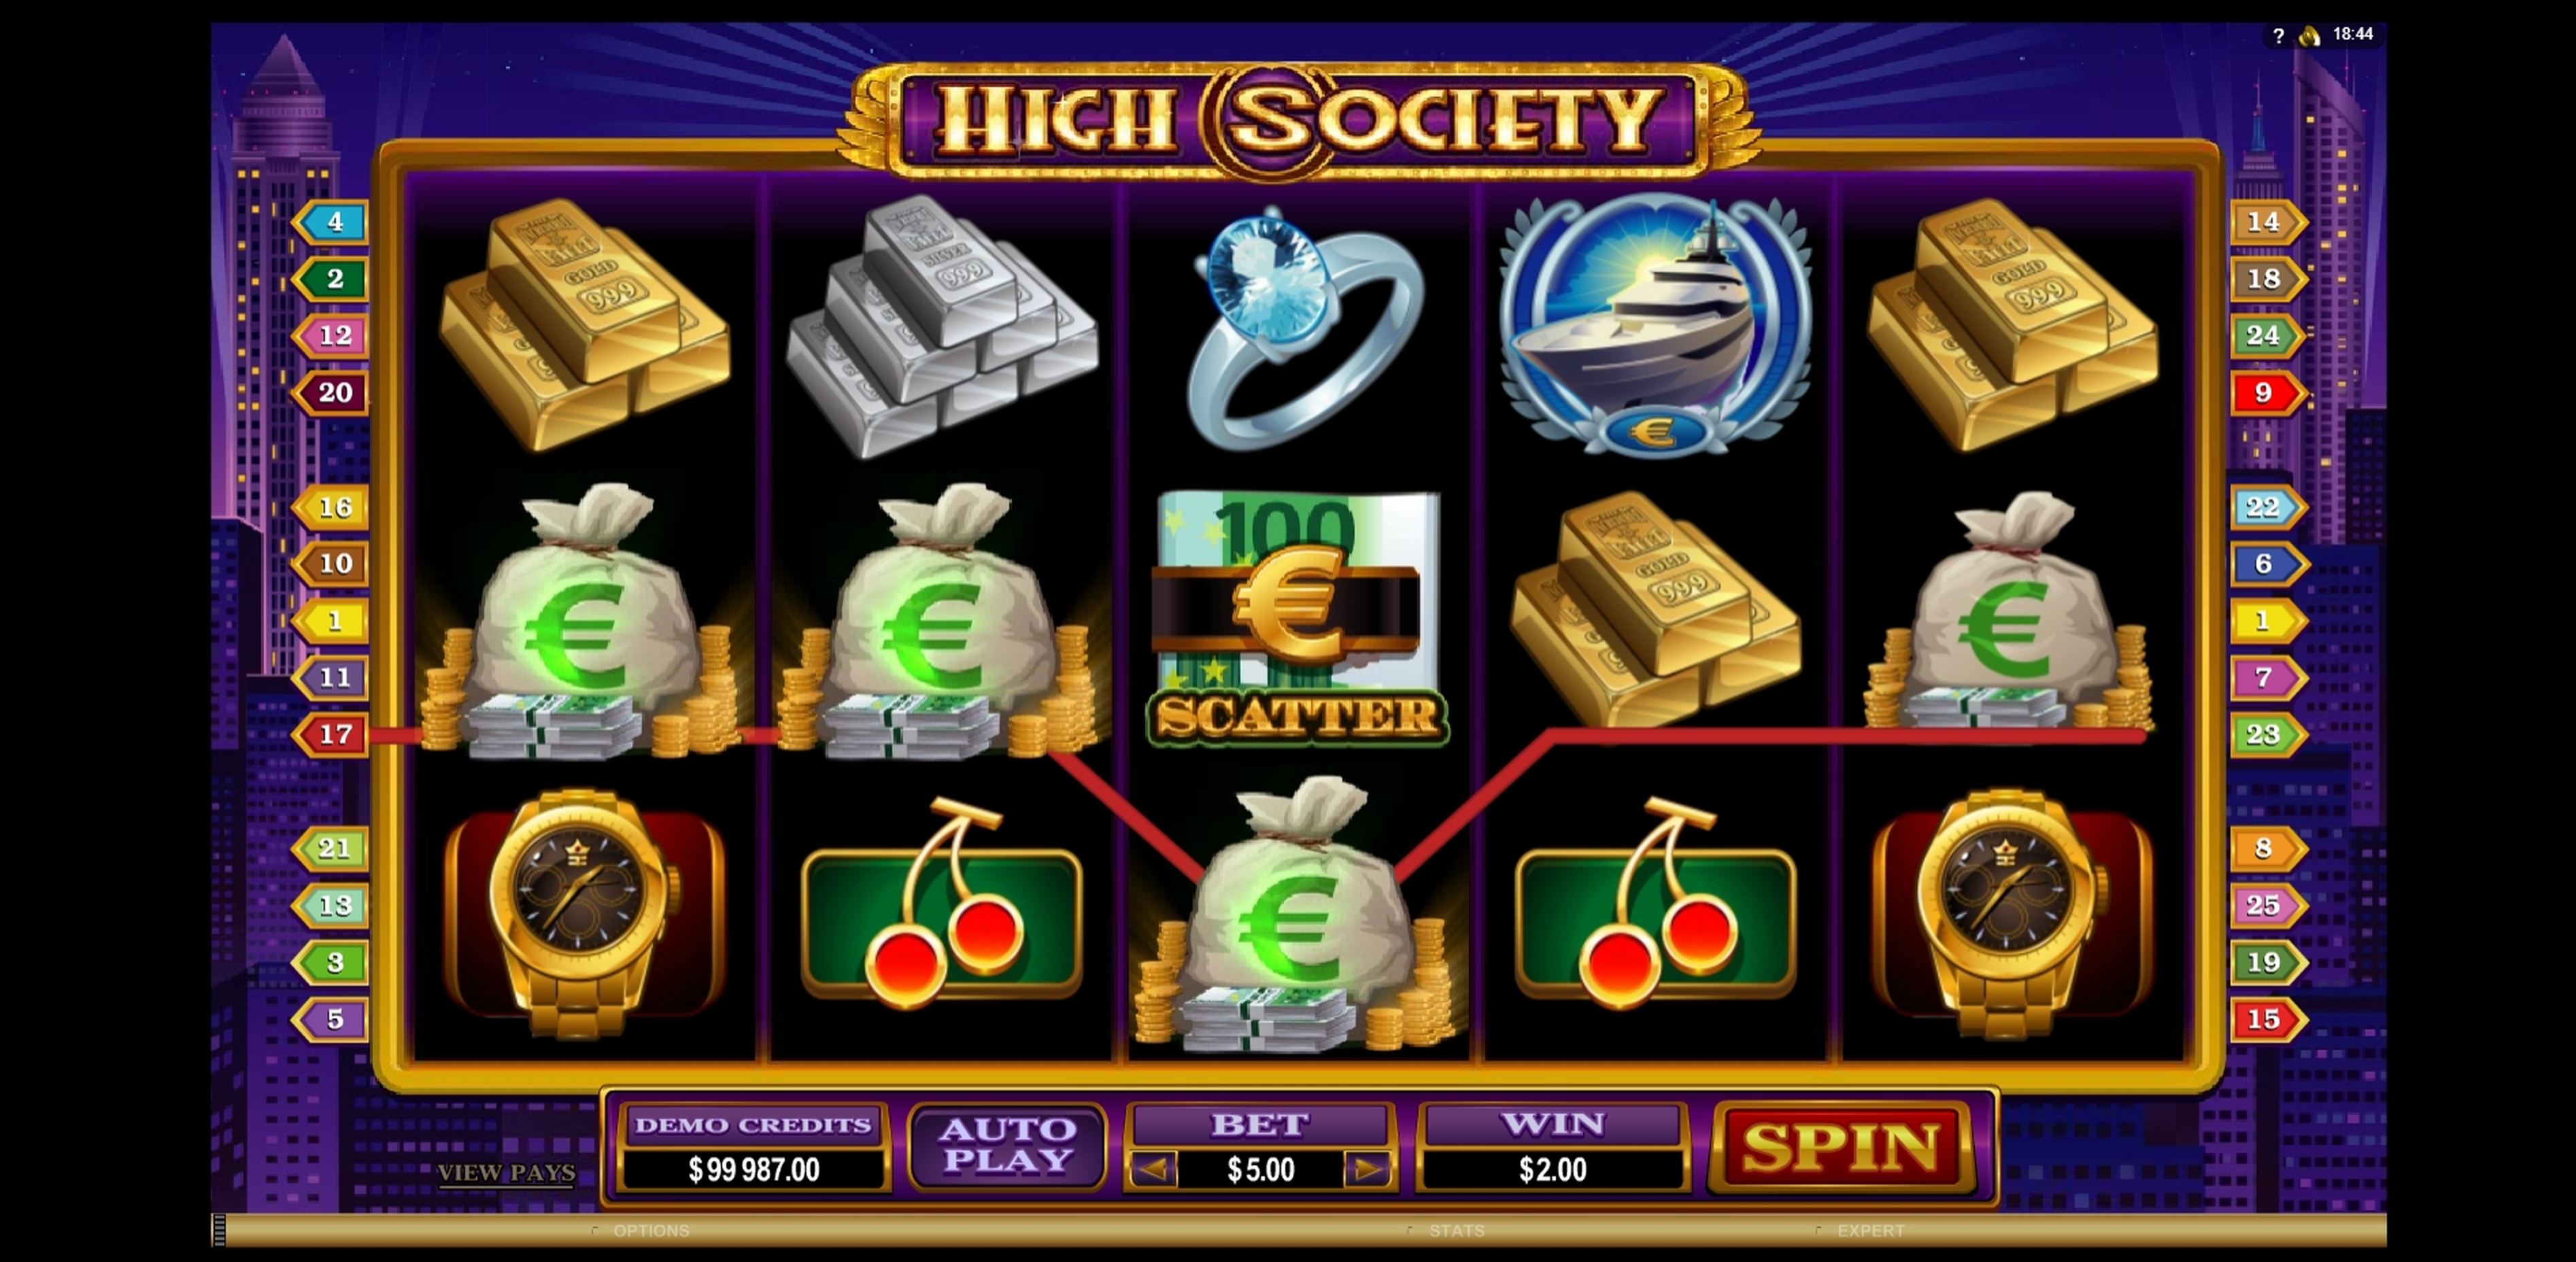 Win Money in High Society Free Slot Game by Microgaming